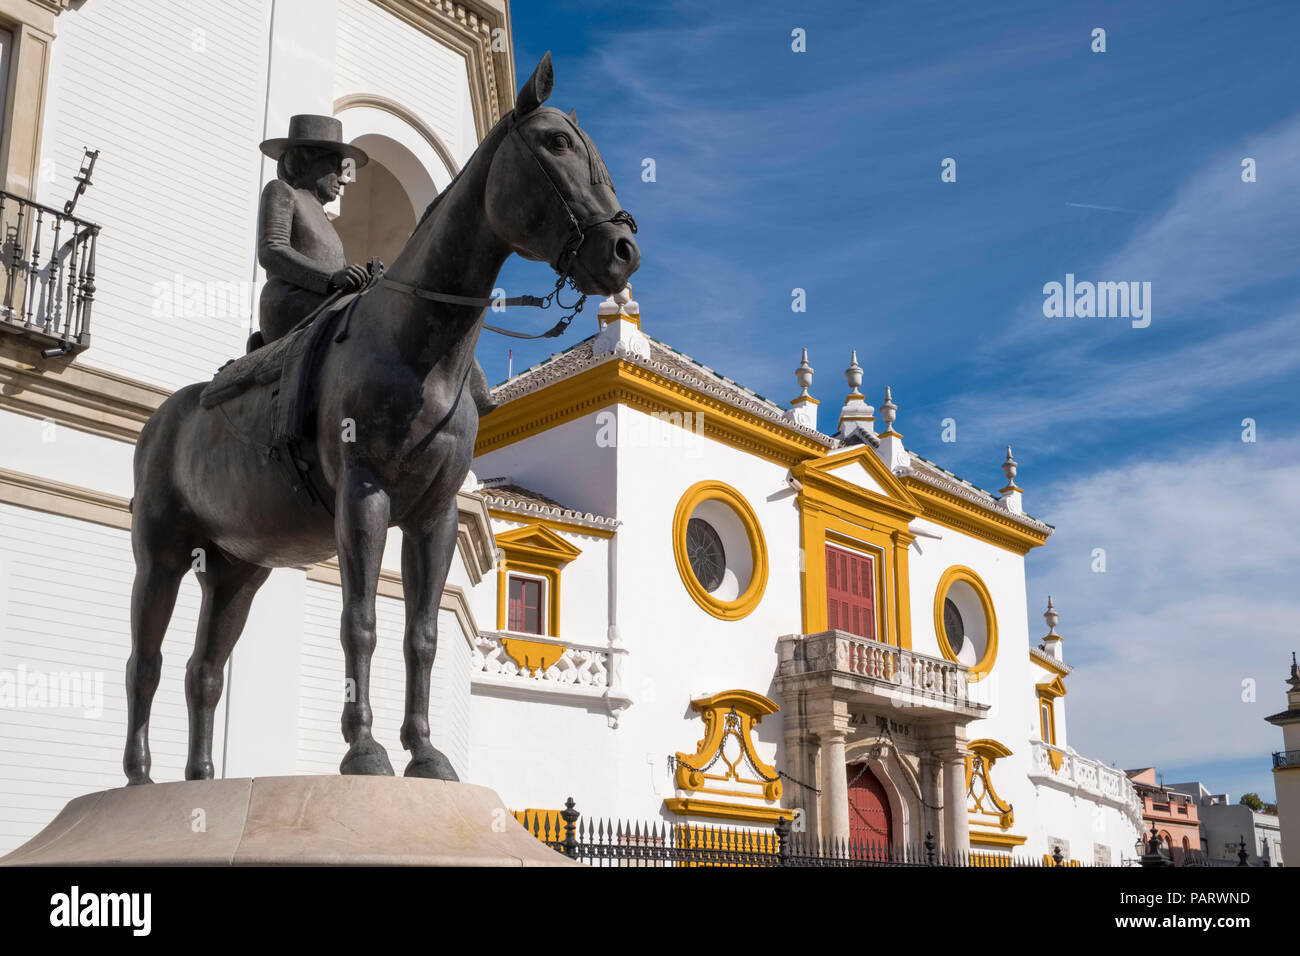 Maestranza, the Plaza de Toros de la Real Maestranza de Caballeria de Sevilla, Seville, Spain, Europe - bullring Stock Photo